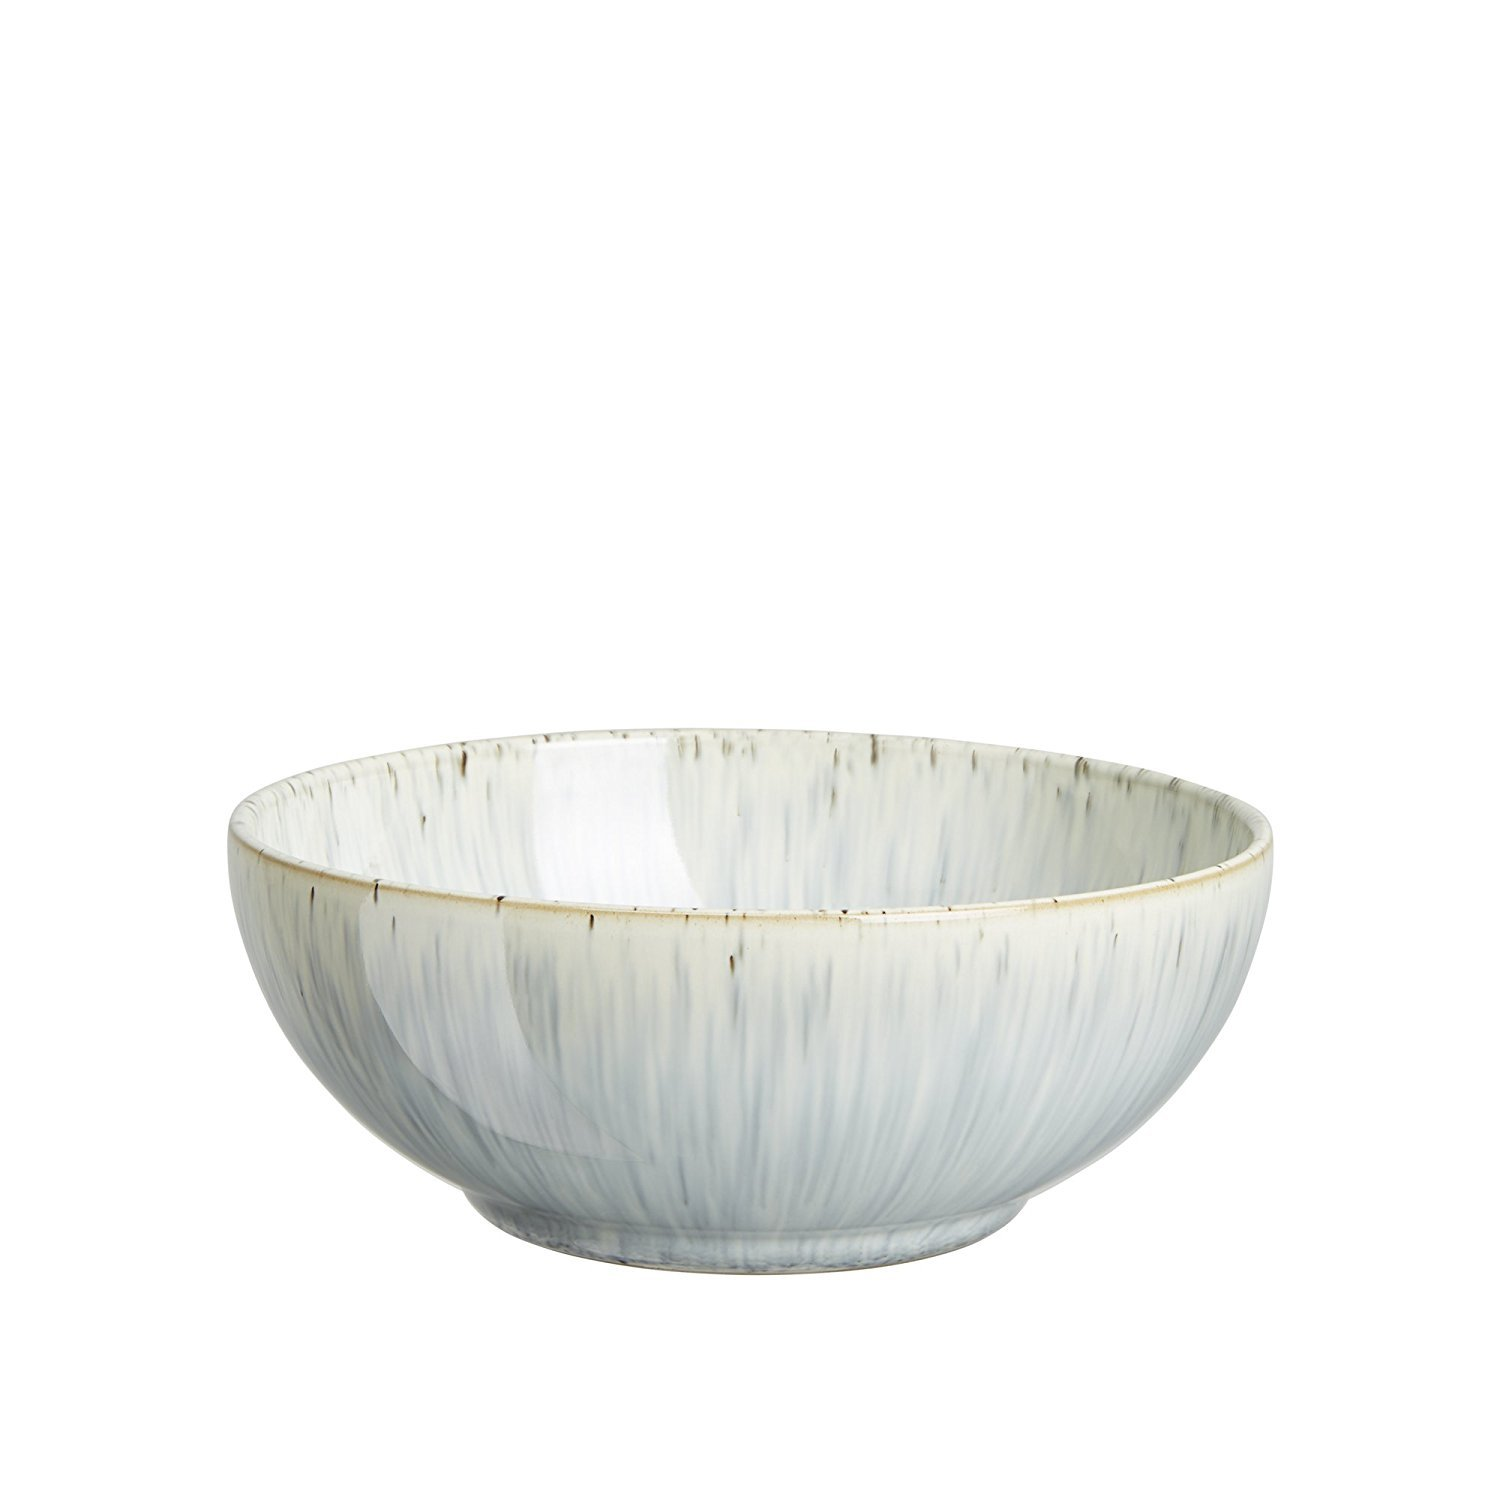 Denby Halo Kitchen Collection Cereal Bowl, Set of 4